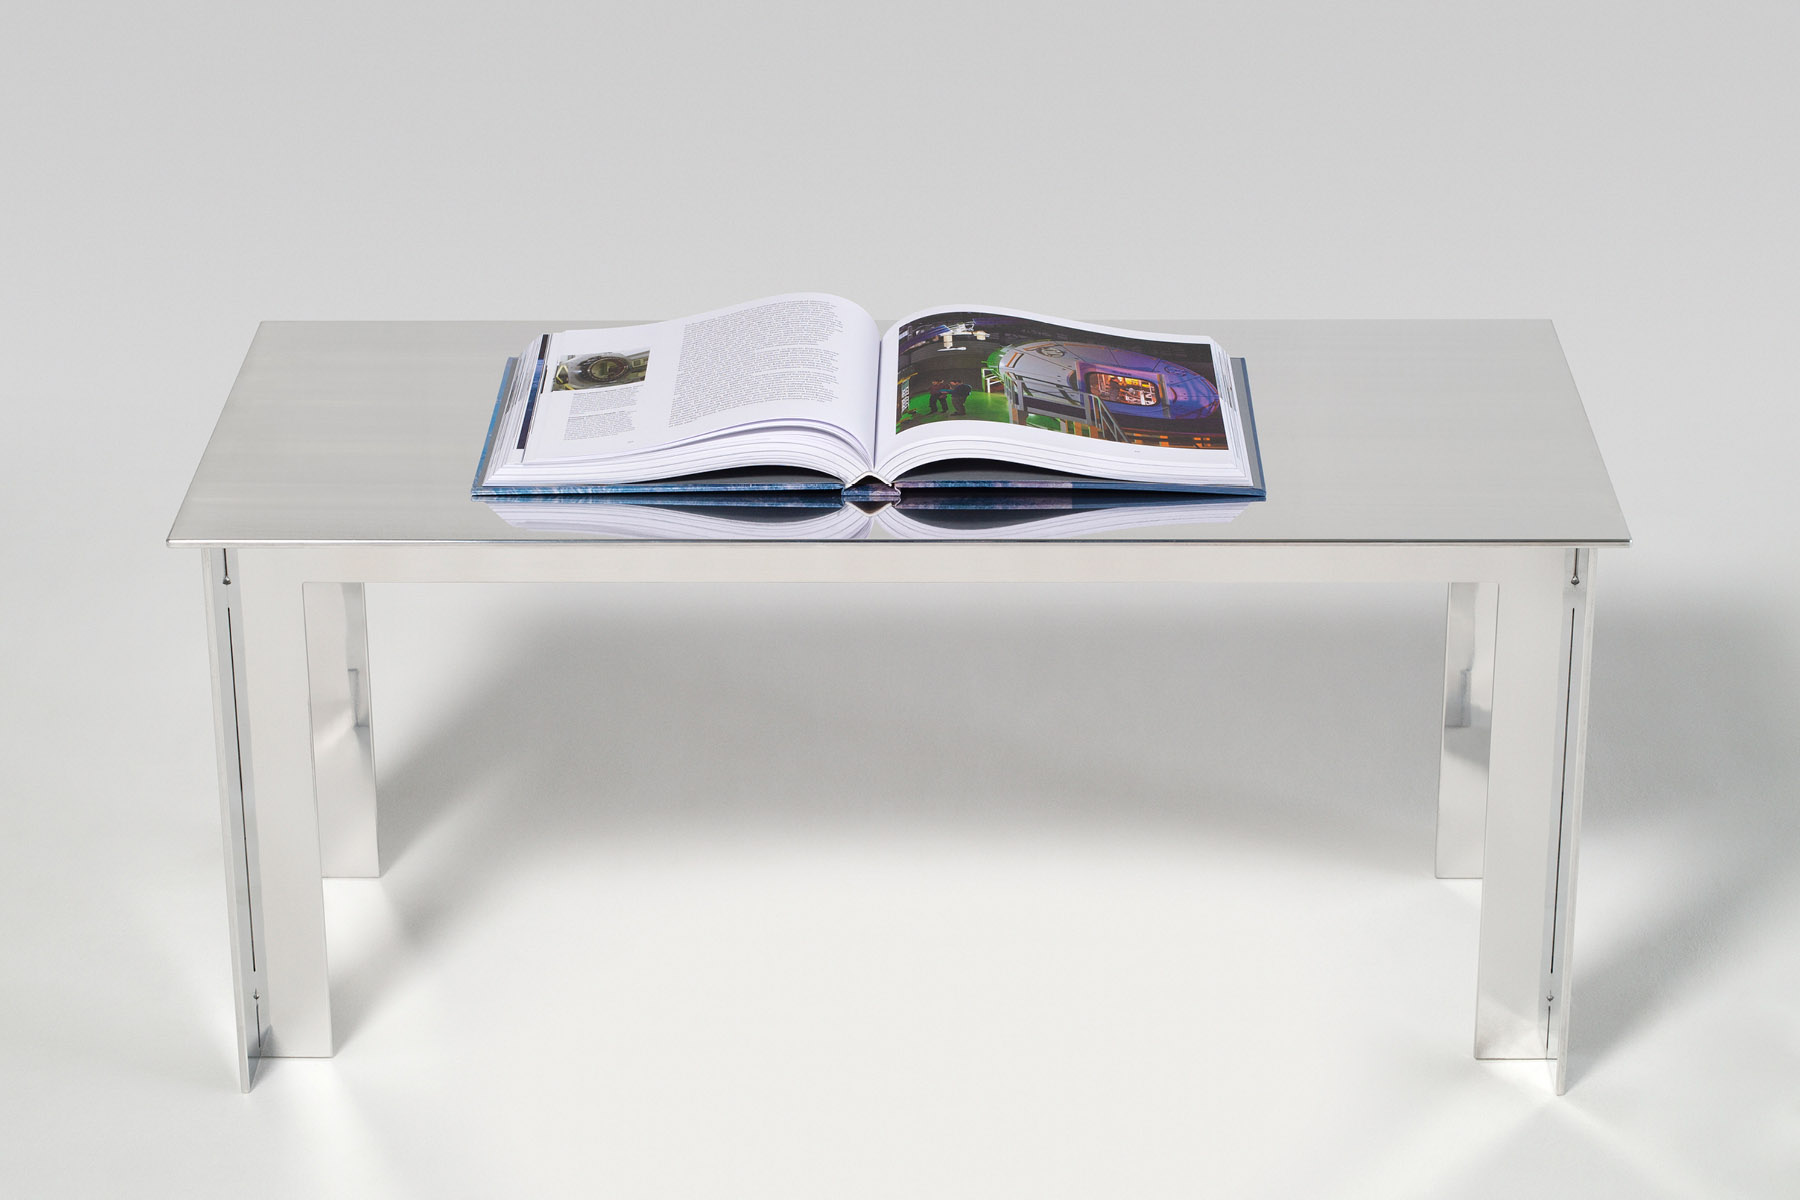 Table basse en aluminium